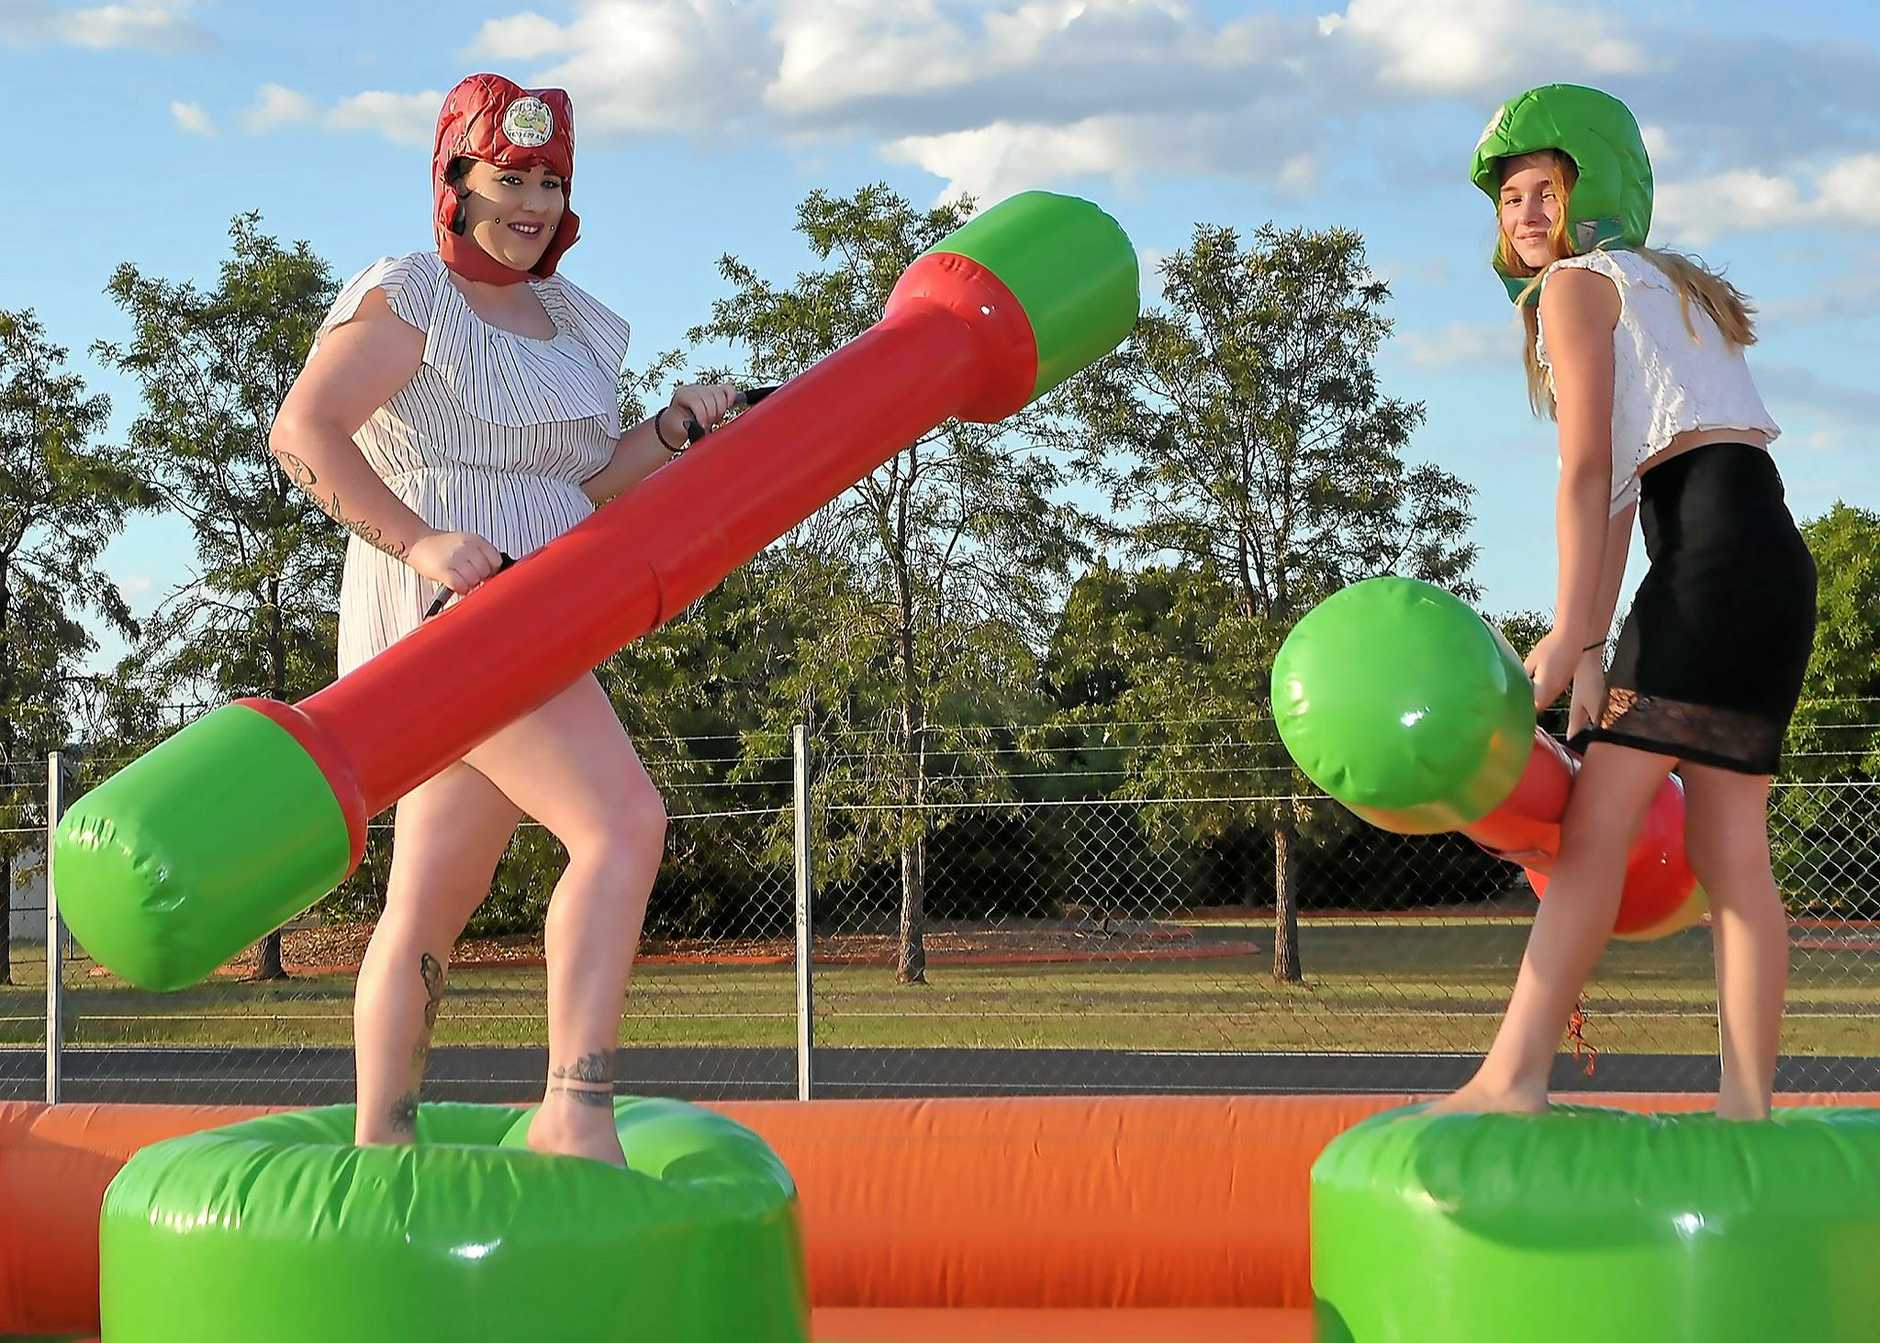 'Gladiator warriors' Kelly Gunther and Hayley Wilkinson get ready to battle at the mardi gras.